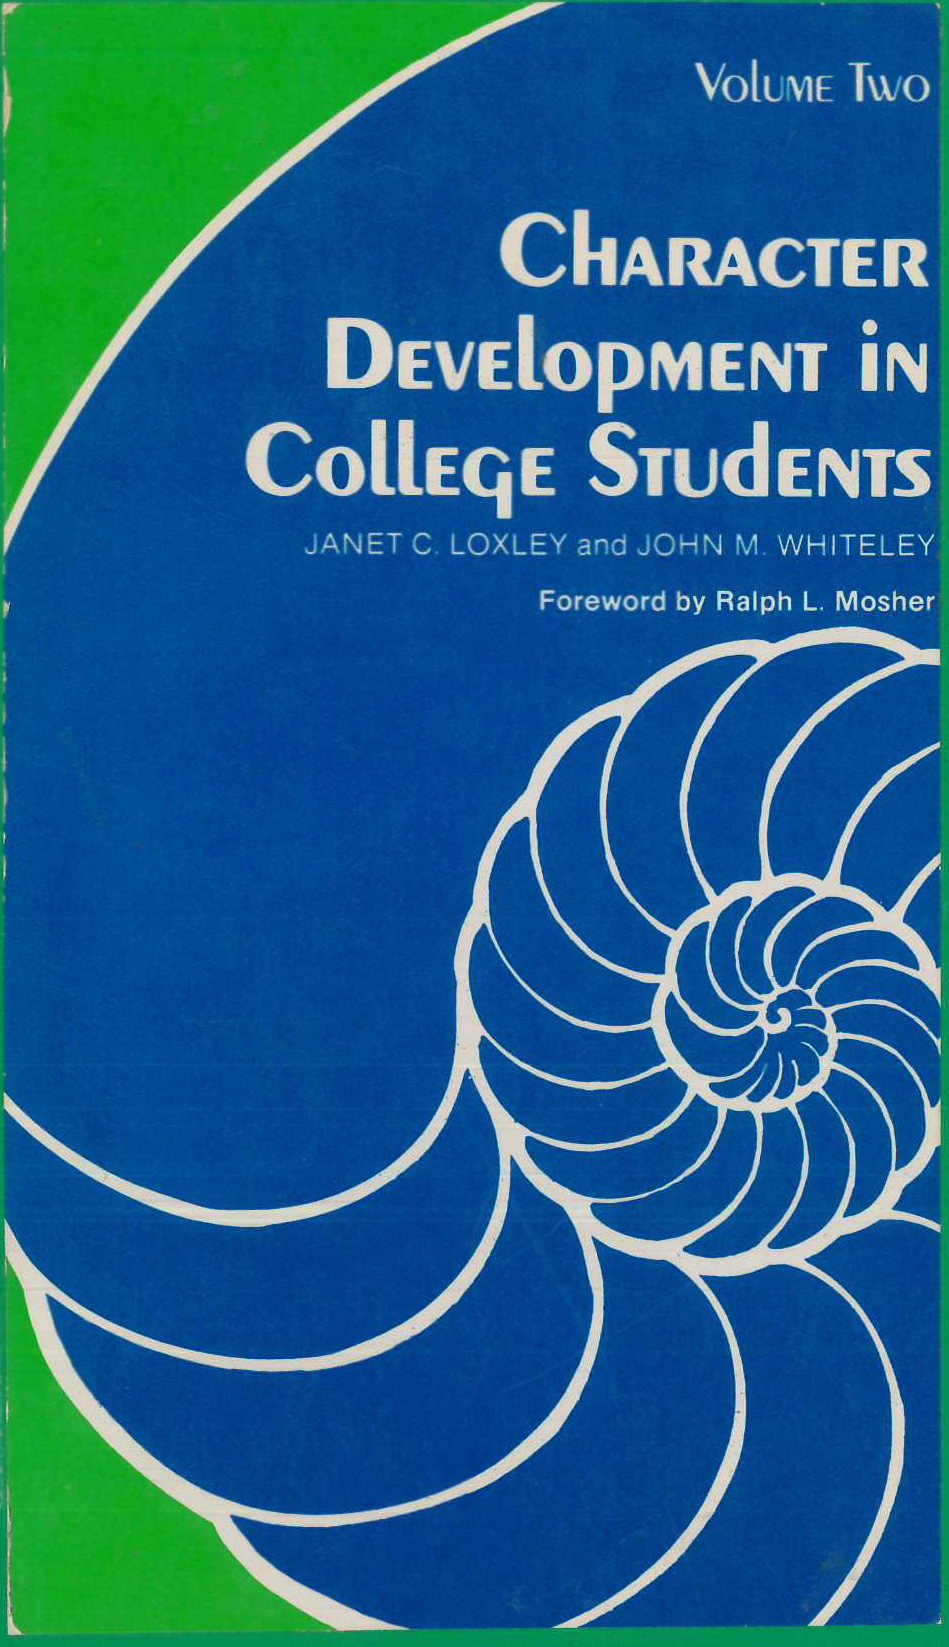 Character Development in College Students, Volume Two: The Curriculum and Longitudinal Results